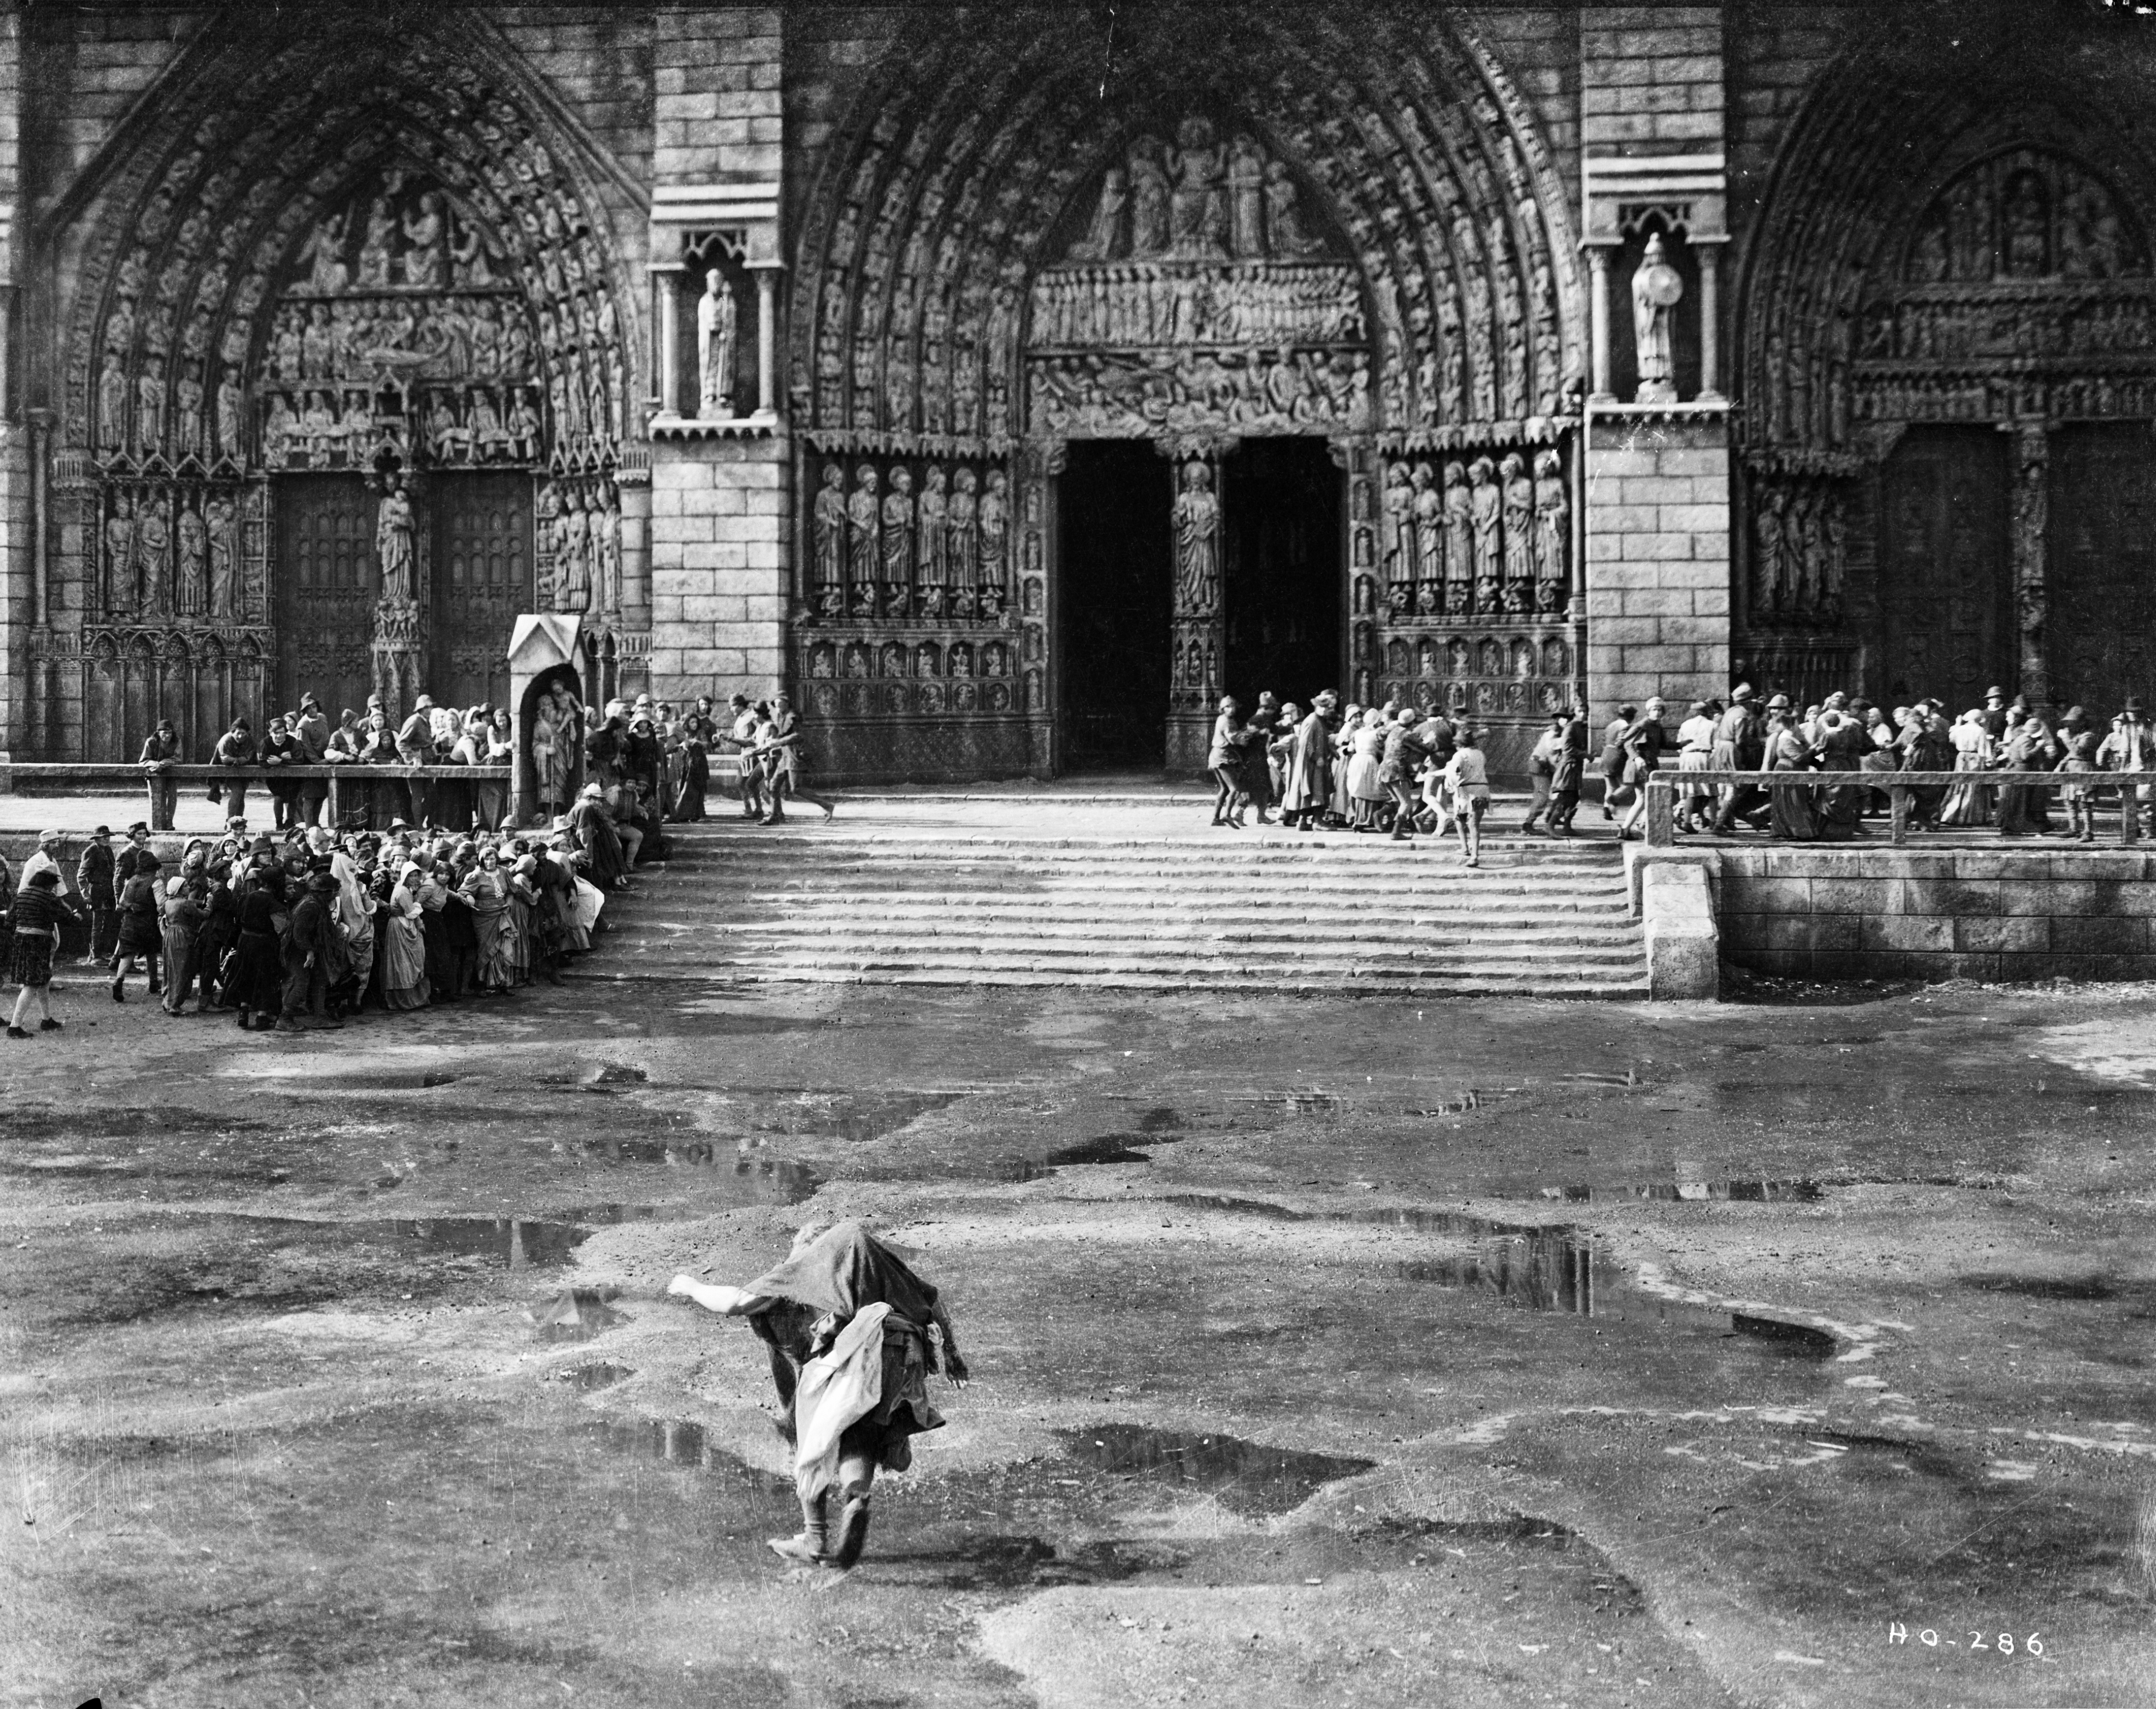 Charles Laughton in The Hunchback of Notre Dame (1939)